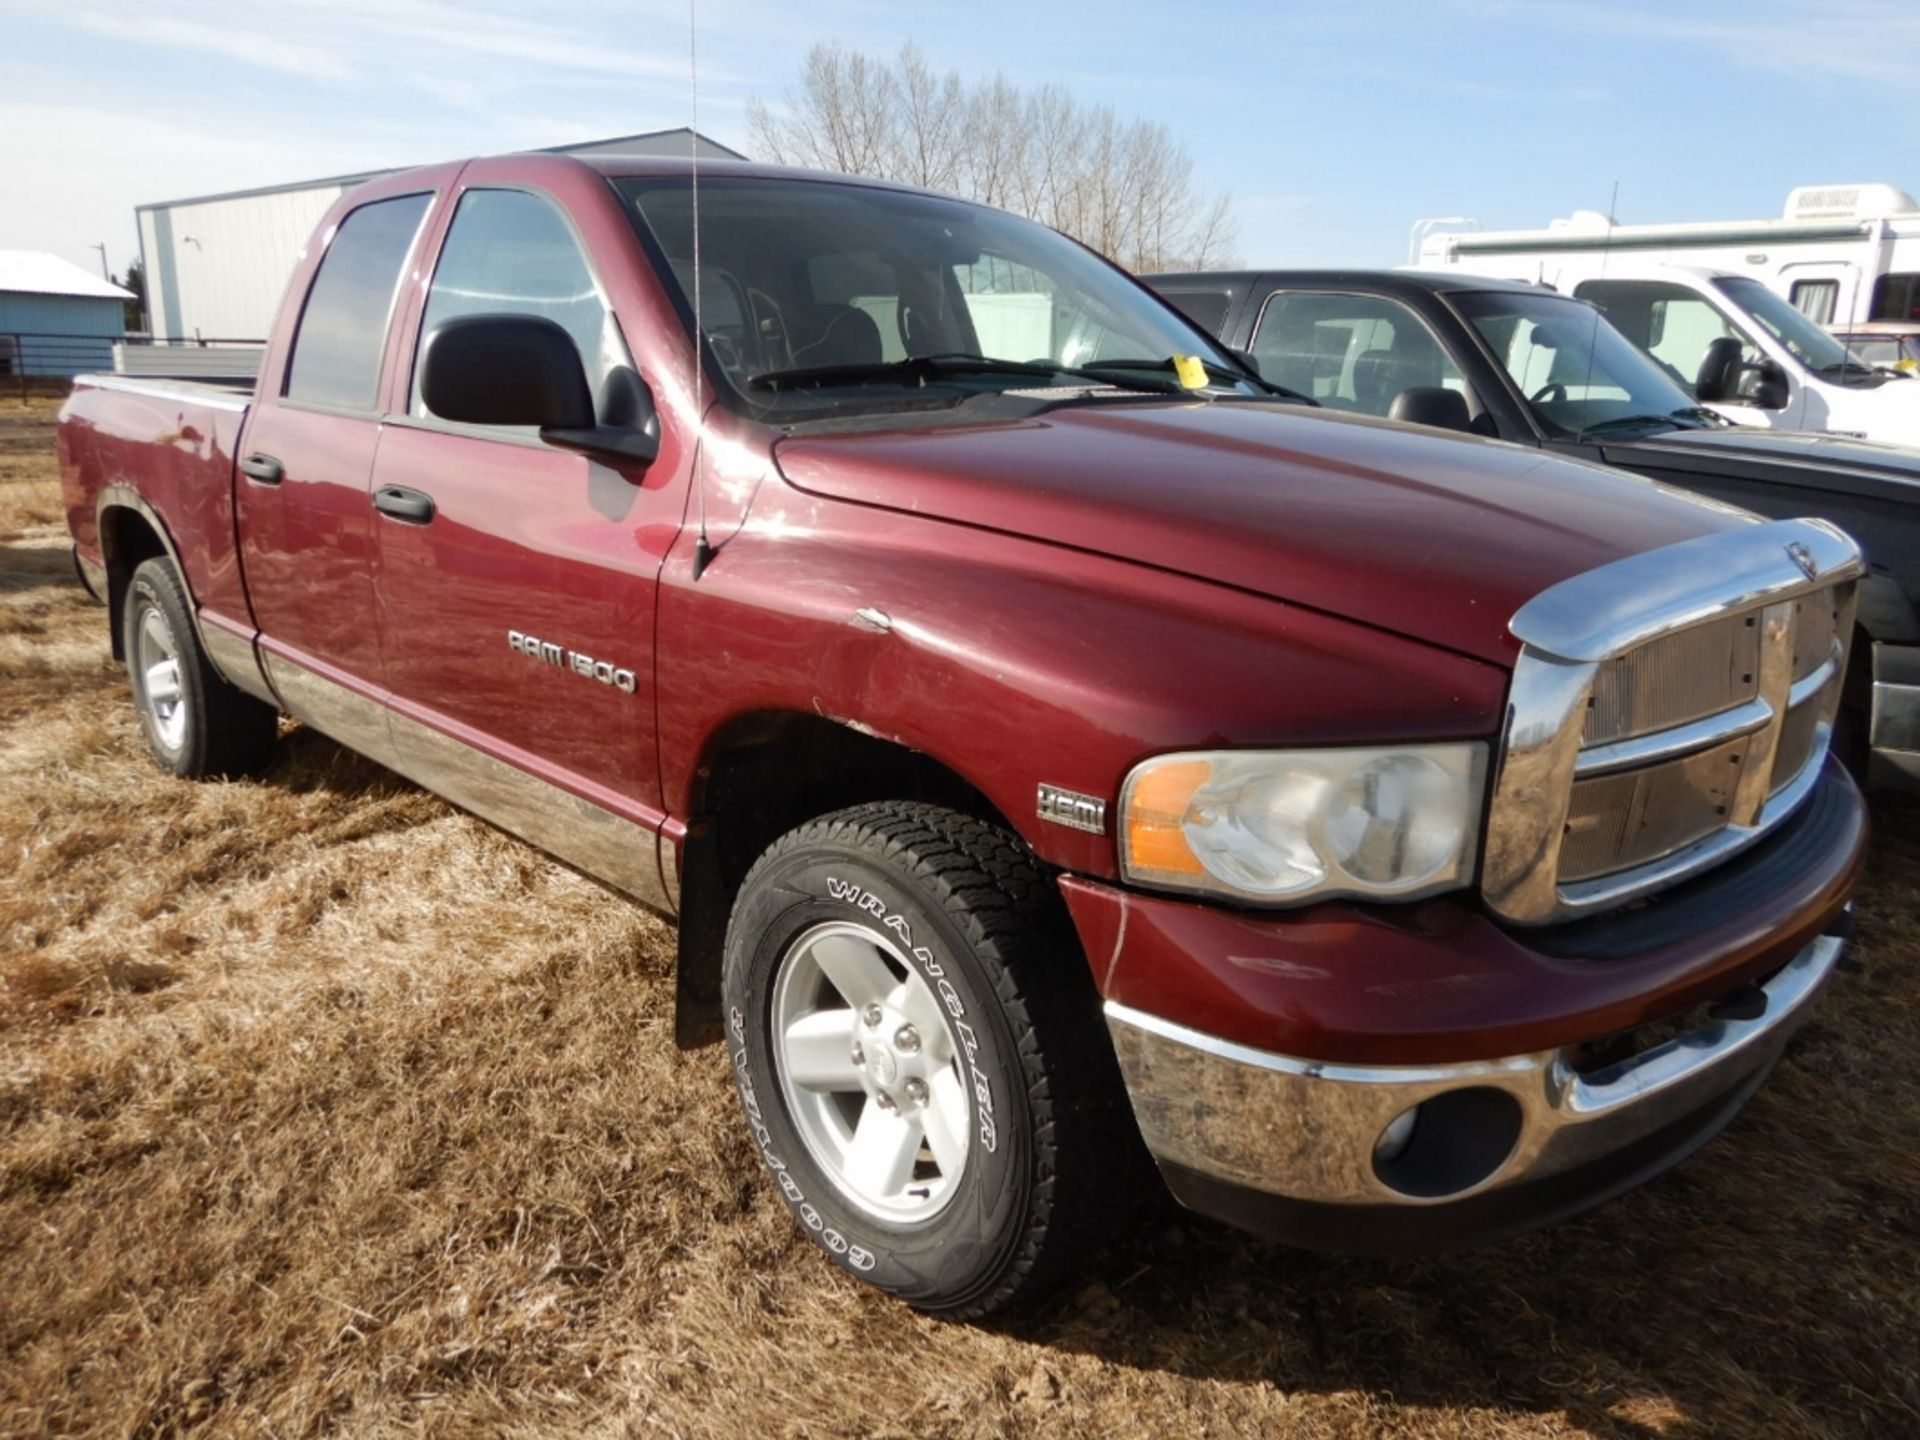 2003 DODGE RAM 1500 PICKUP, GAS, CREW CAB, SHORT BOX, AT, 248,000KM'S SHOWING, S/N